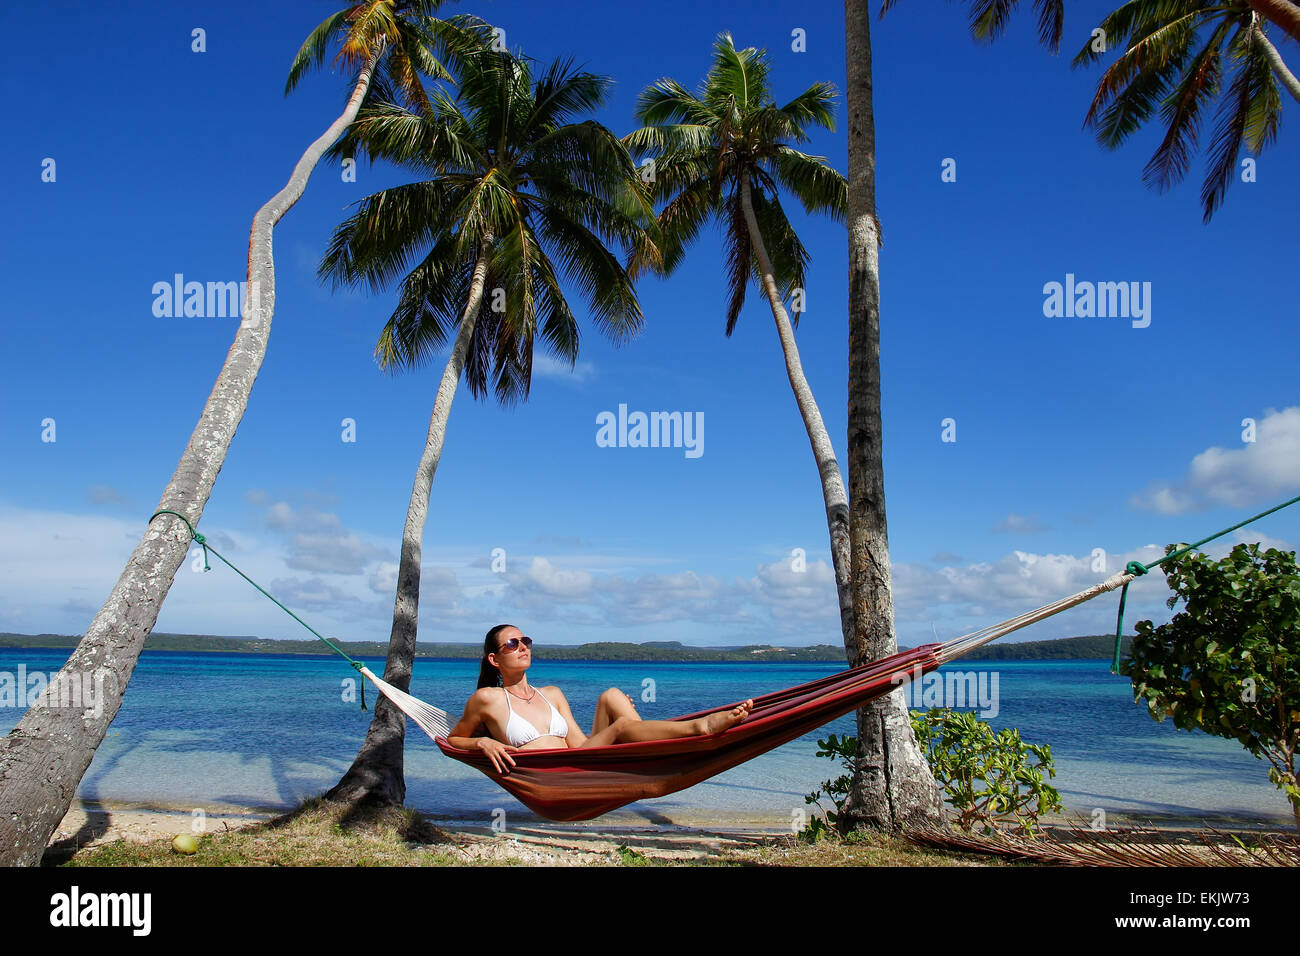 Young woman in bikini sitting in a hammock between palm trees, Ofu island, Vavau group, Tonga - Stock Image